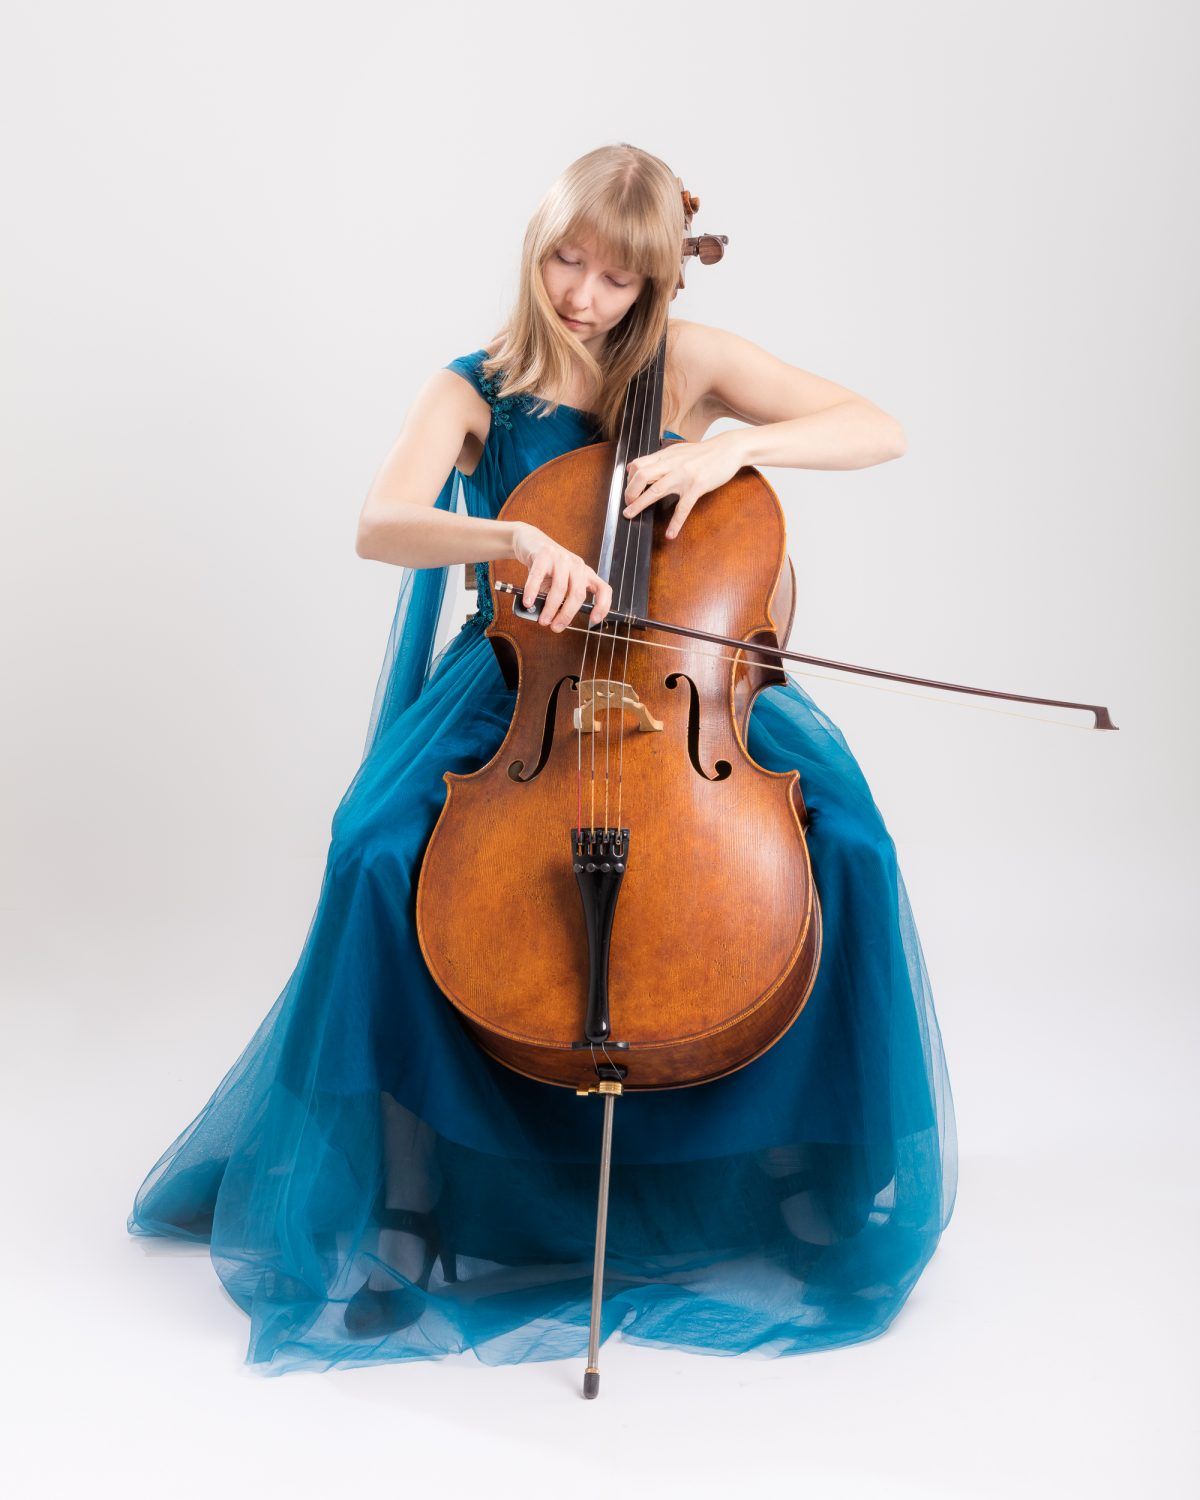 Isabel Gehweiler in blue dress playing cello